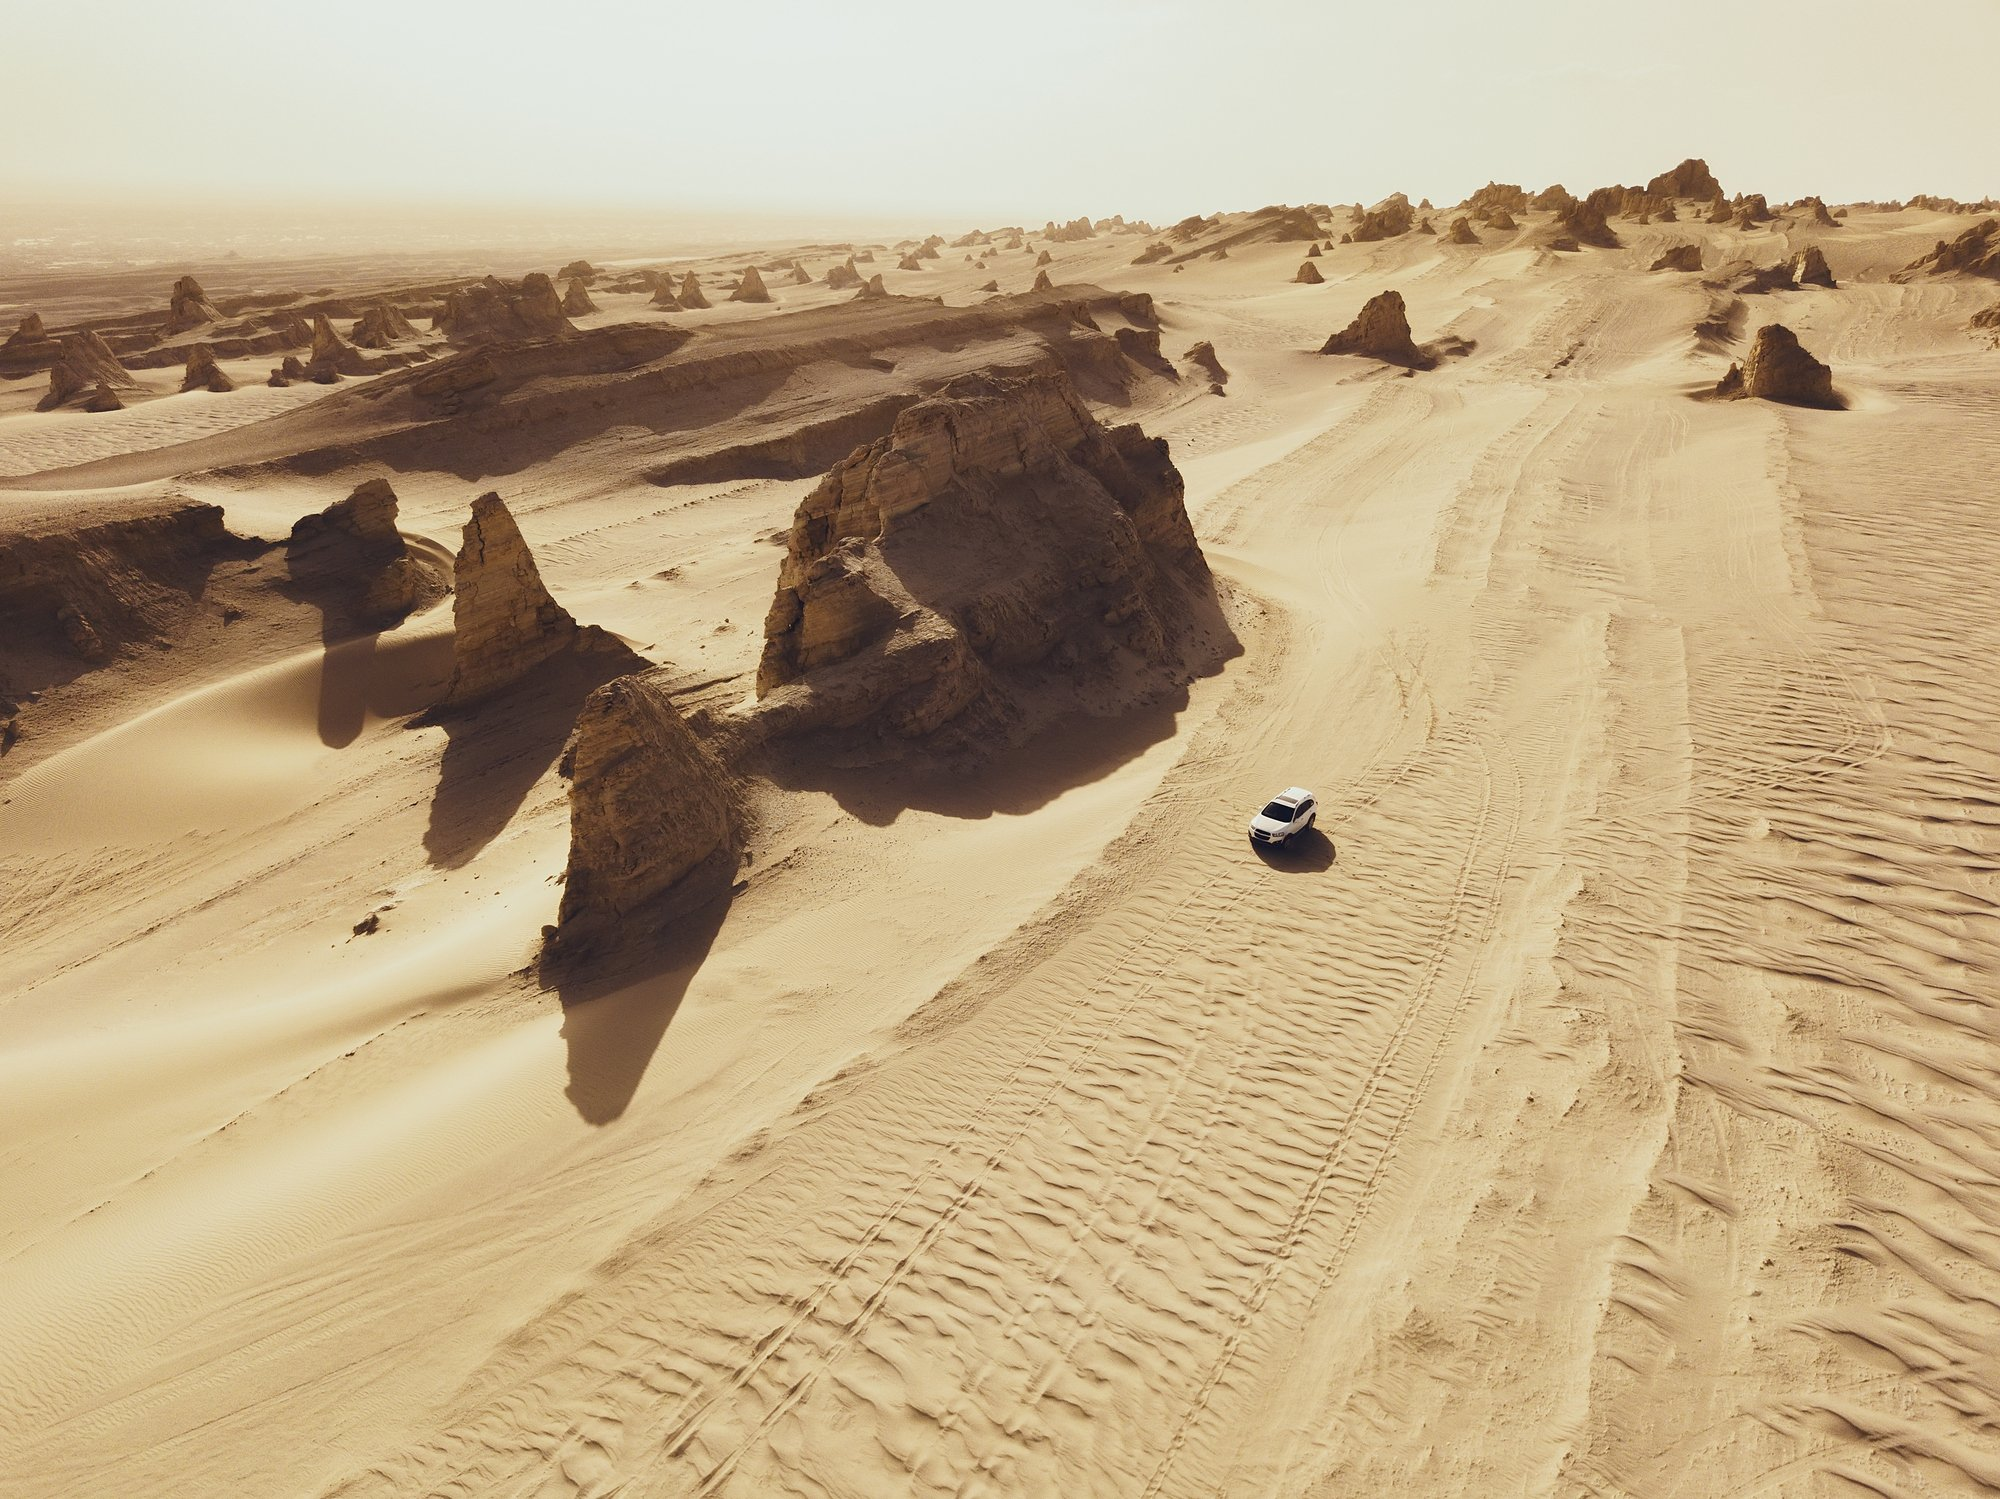 Aerial view of white car on desert road    Photo: Getty Images